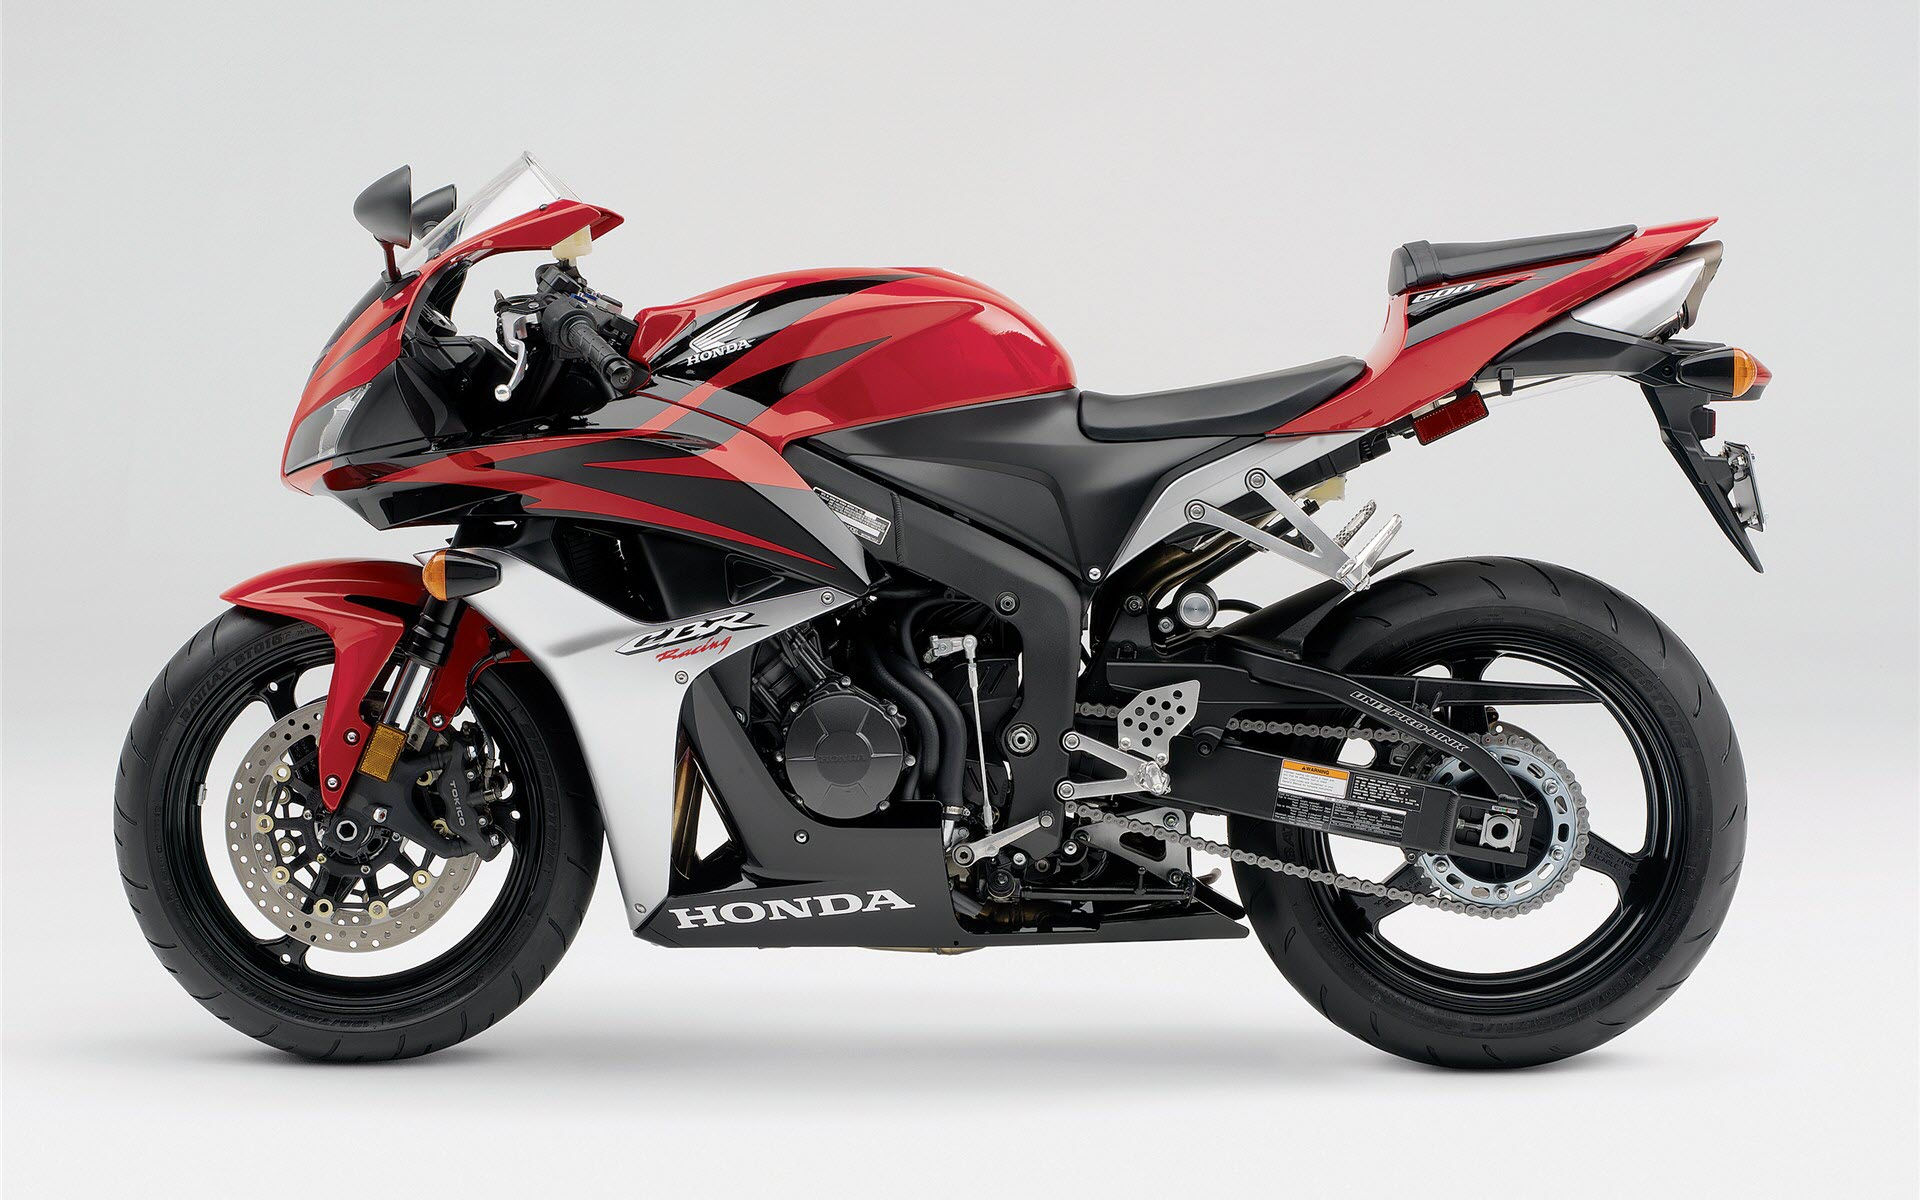 Honda CBR 600RR Red 205.52 Kb